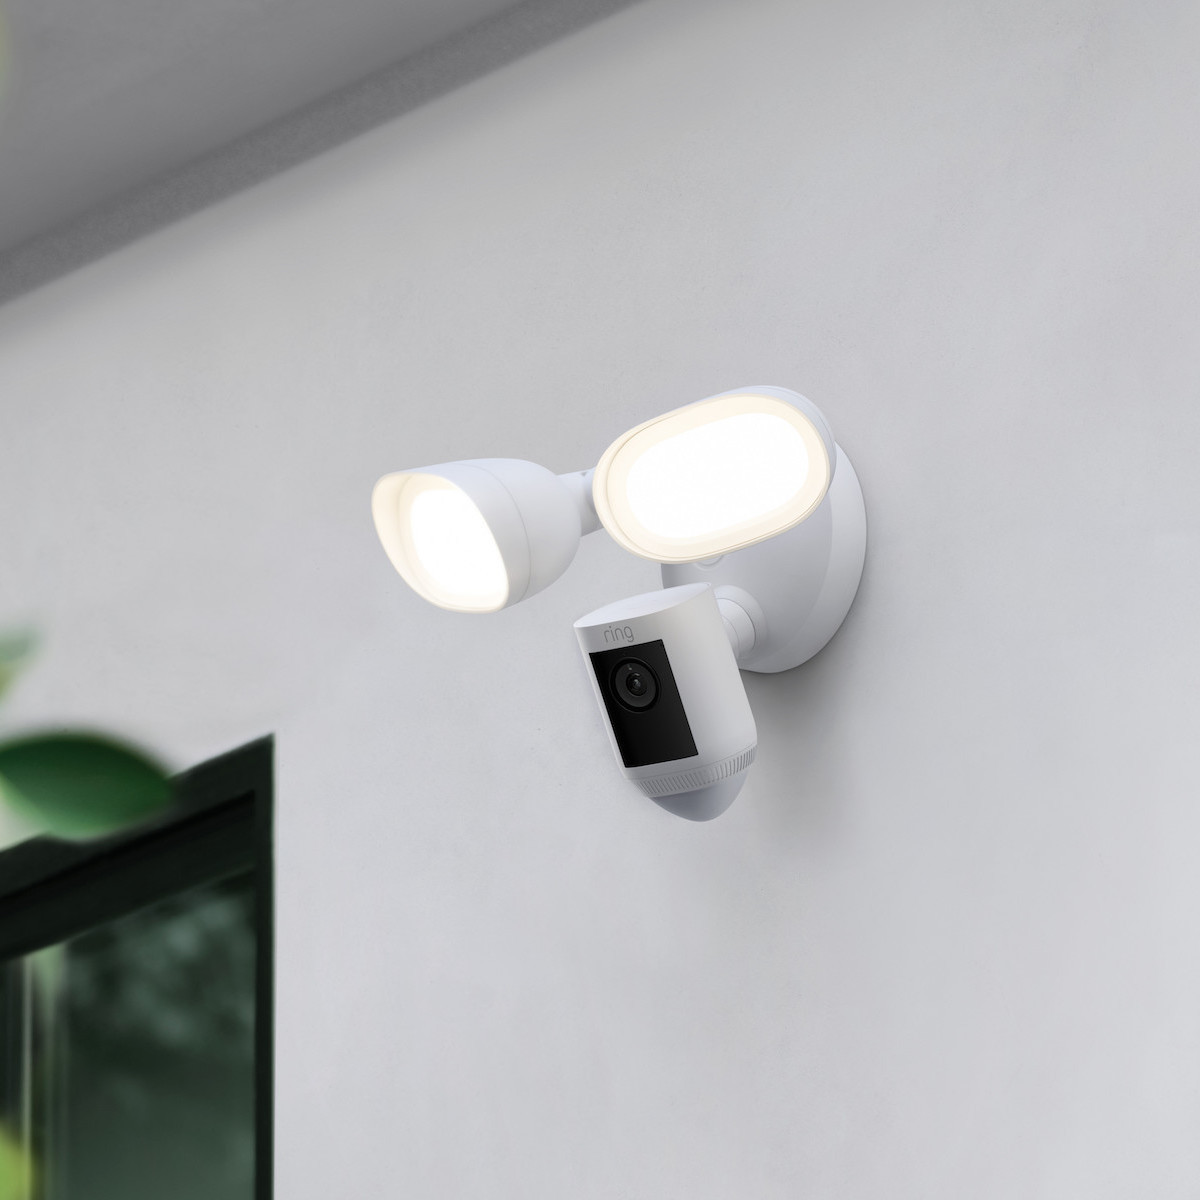 Ring's new floodlight camera comes with radar-scanning tech thumbnail